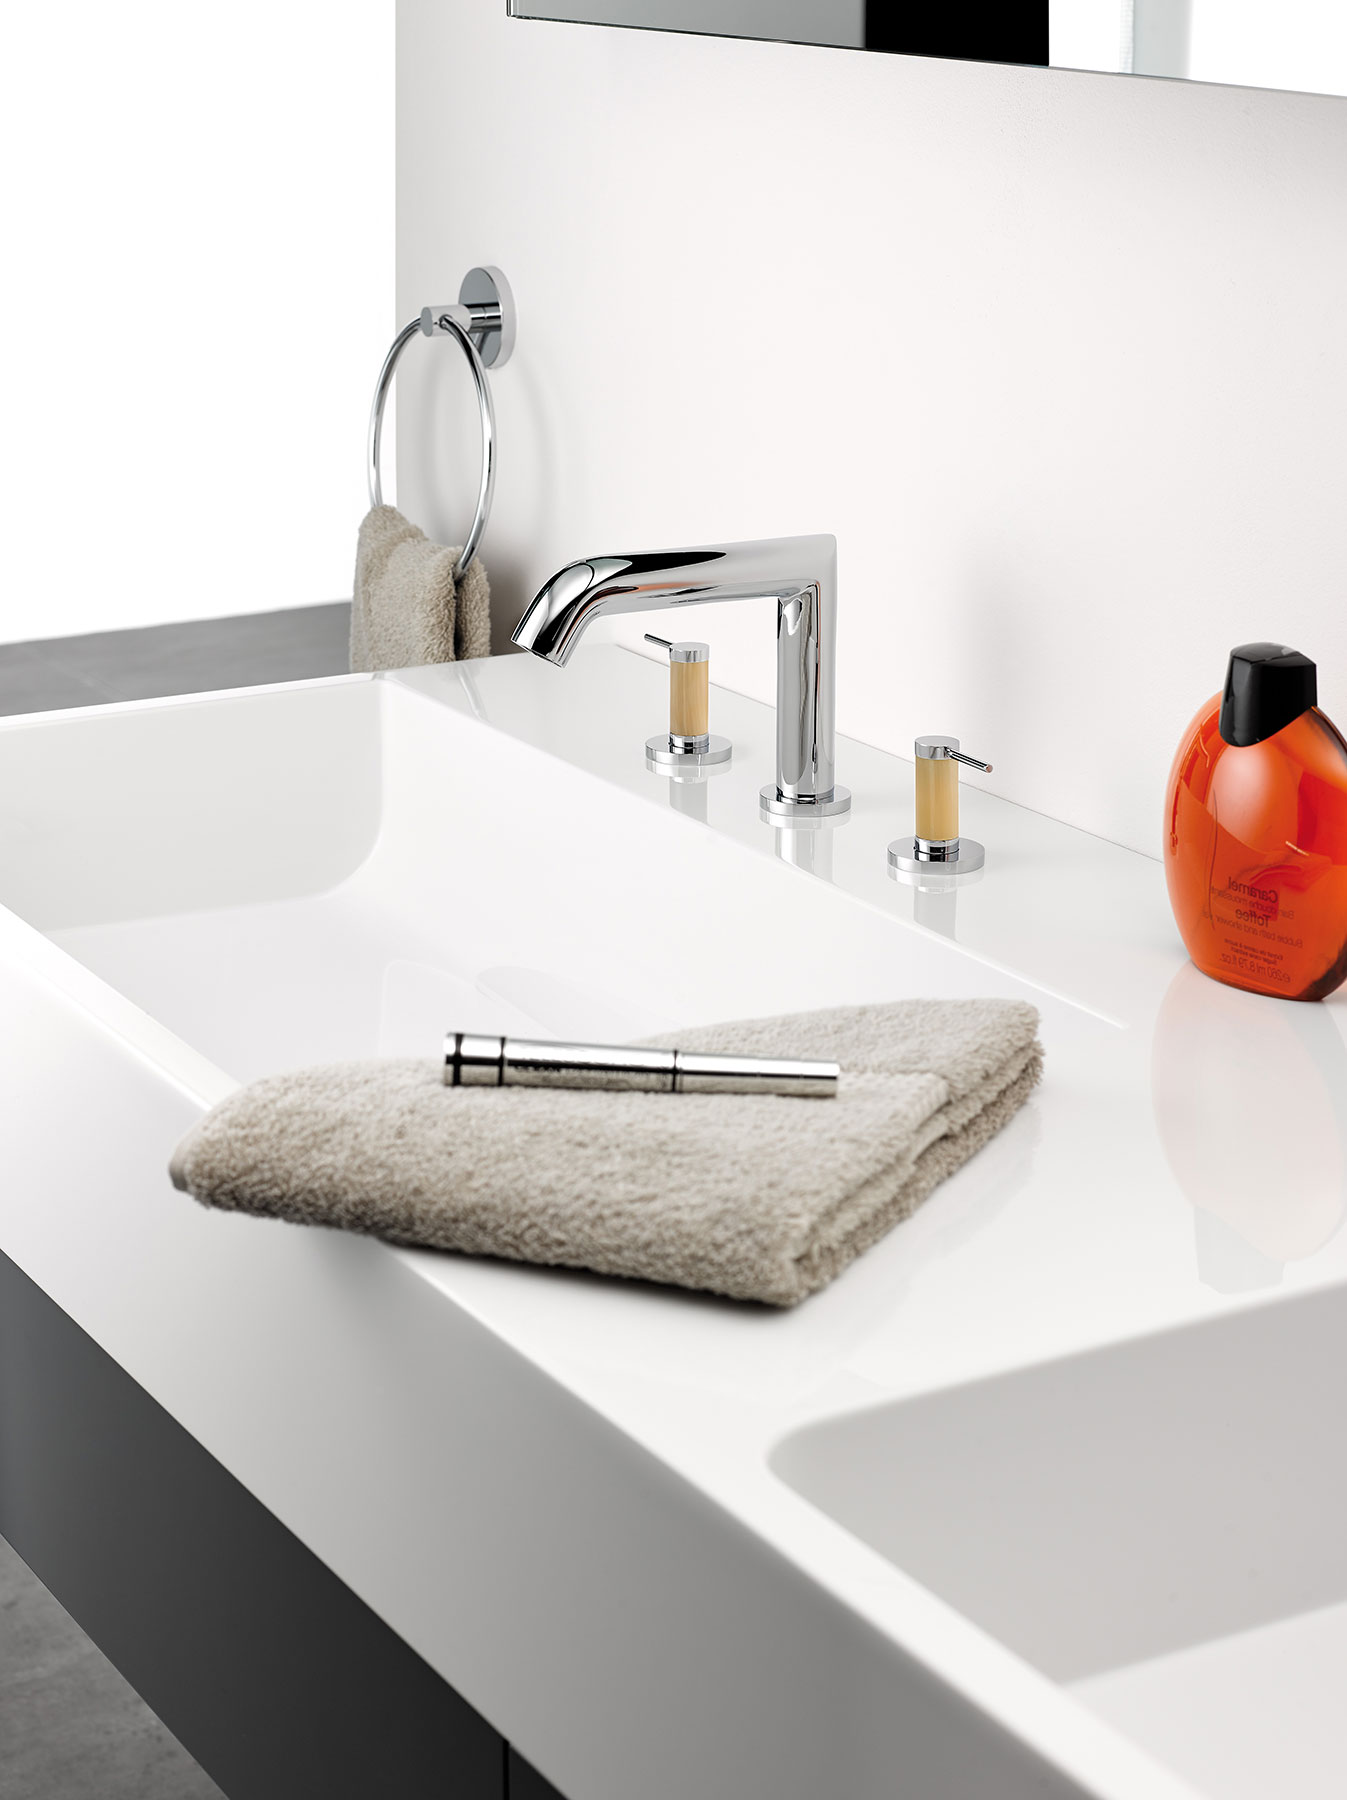 Transitional AnoaDeck Mount Faucet